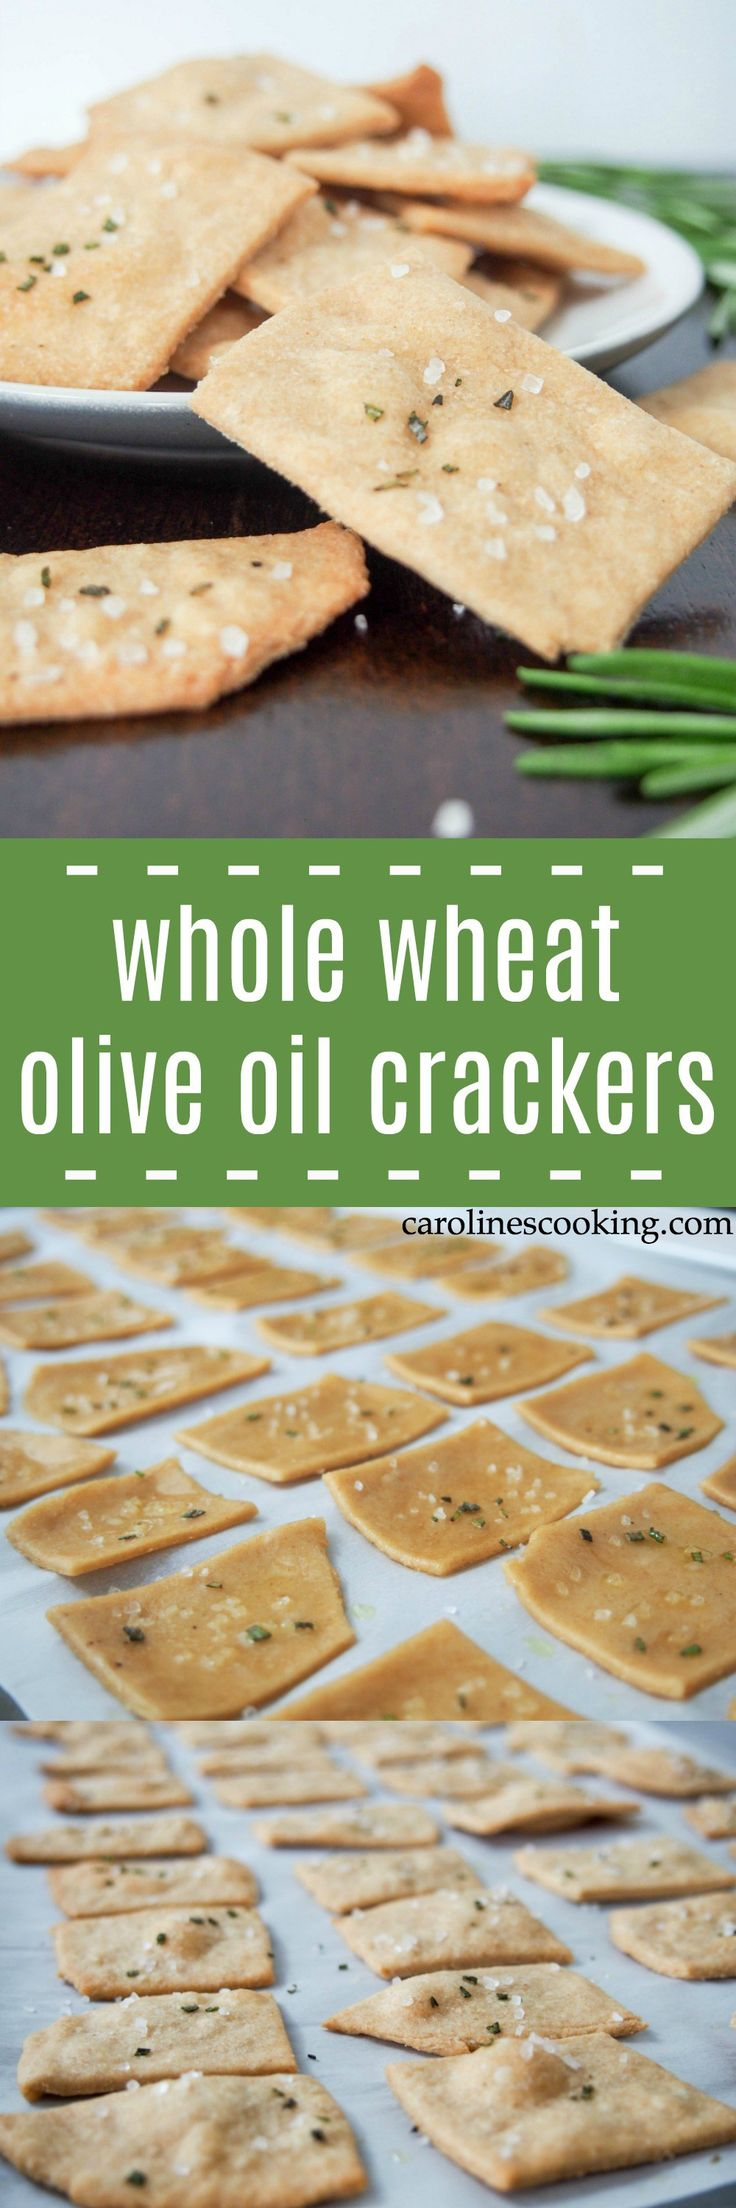 These whole wheat olive oil crackers are easy to make with a wonderful flavor and crisp texture. Perfect for snacking, dipping or top with cheese. vegan AD